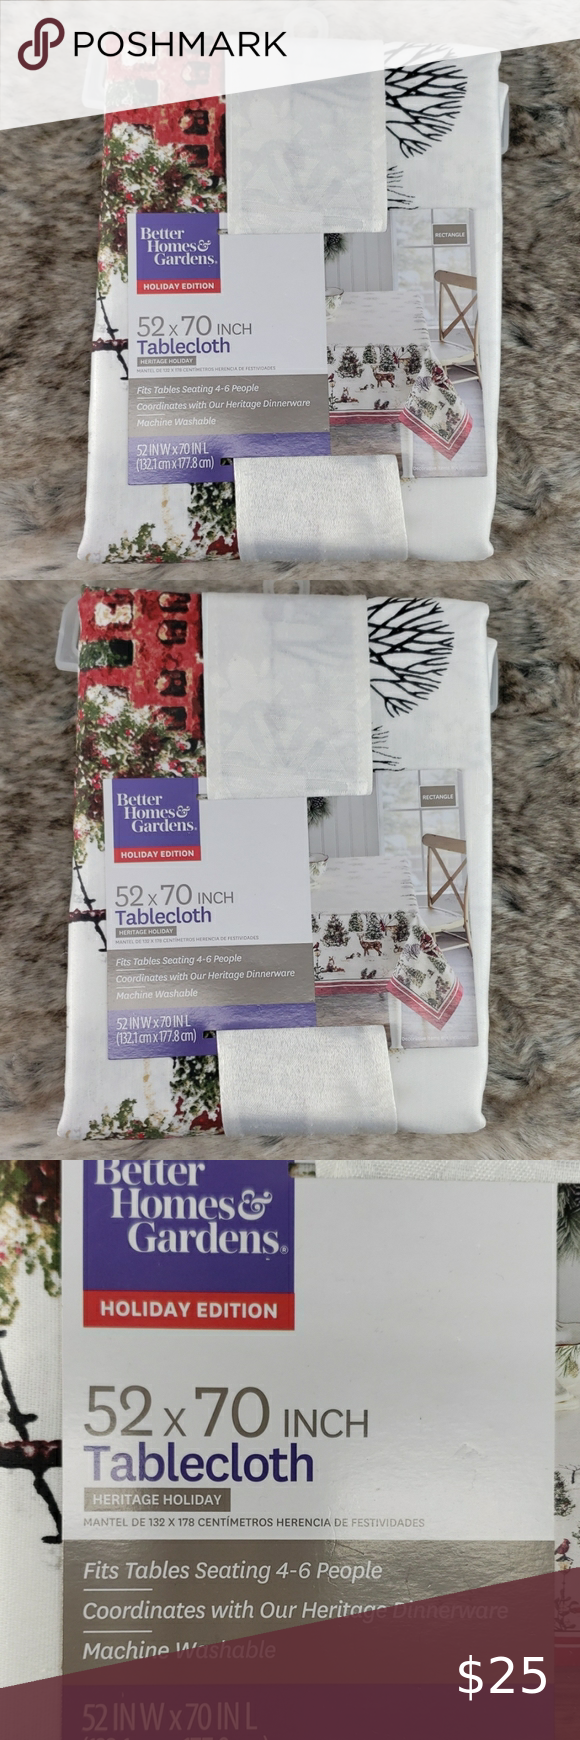 fadc3469a04560f77f611340292c3645 - Better Homes And Gardens Holiday Edition Tablecloth